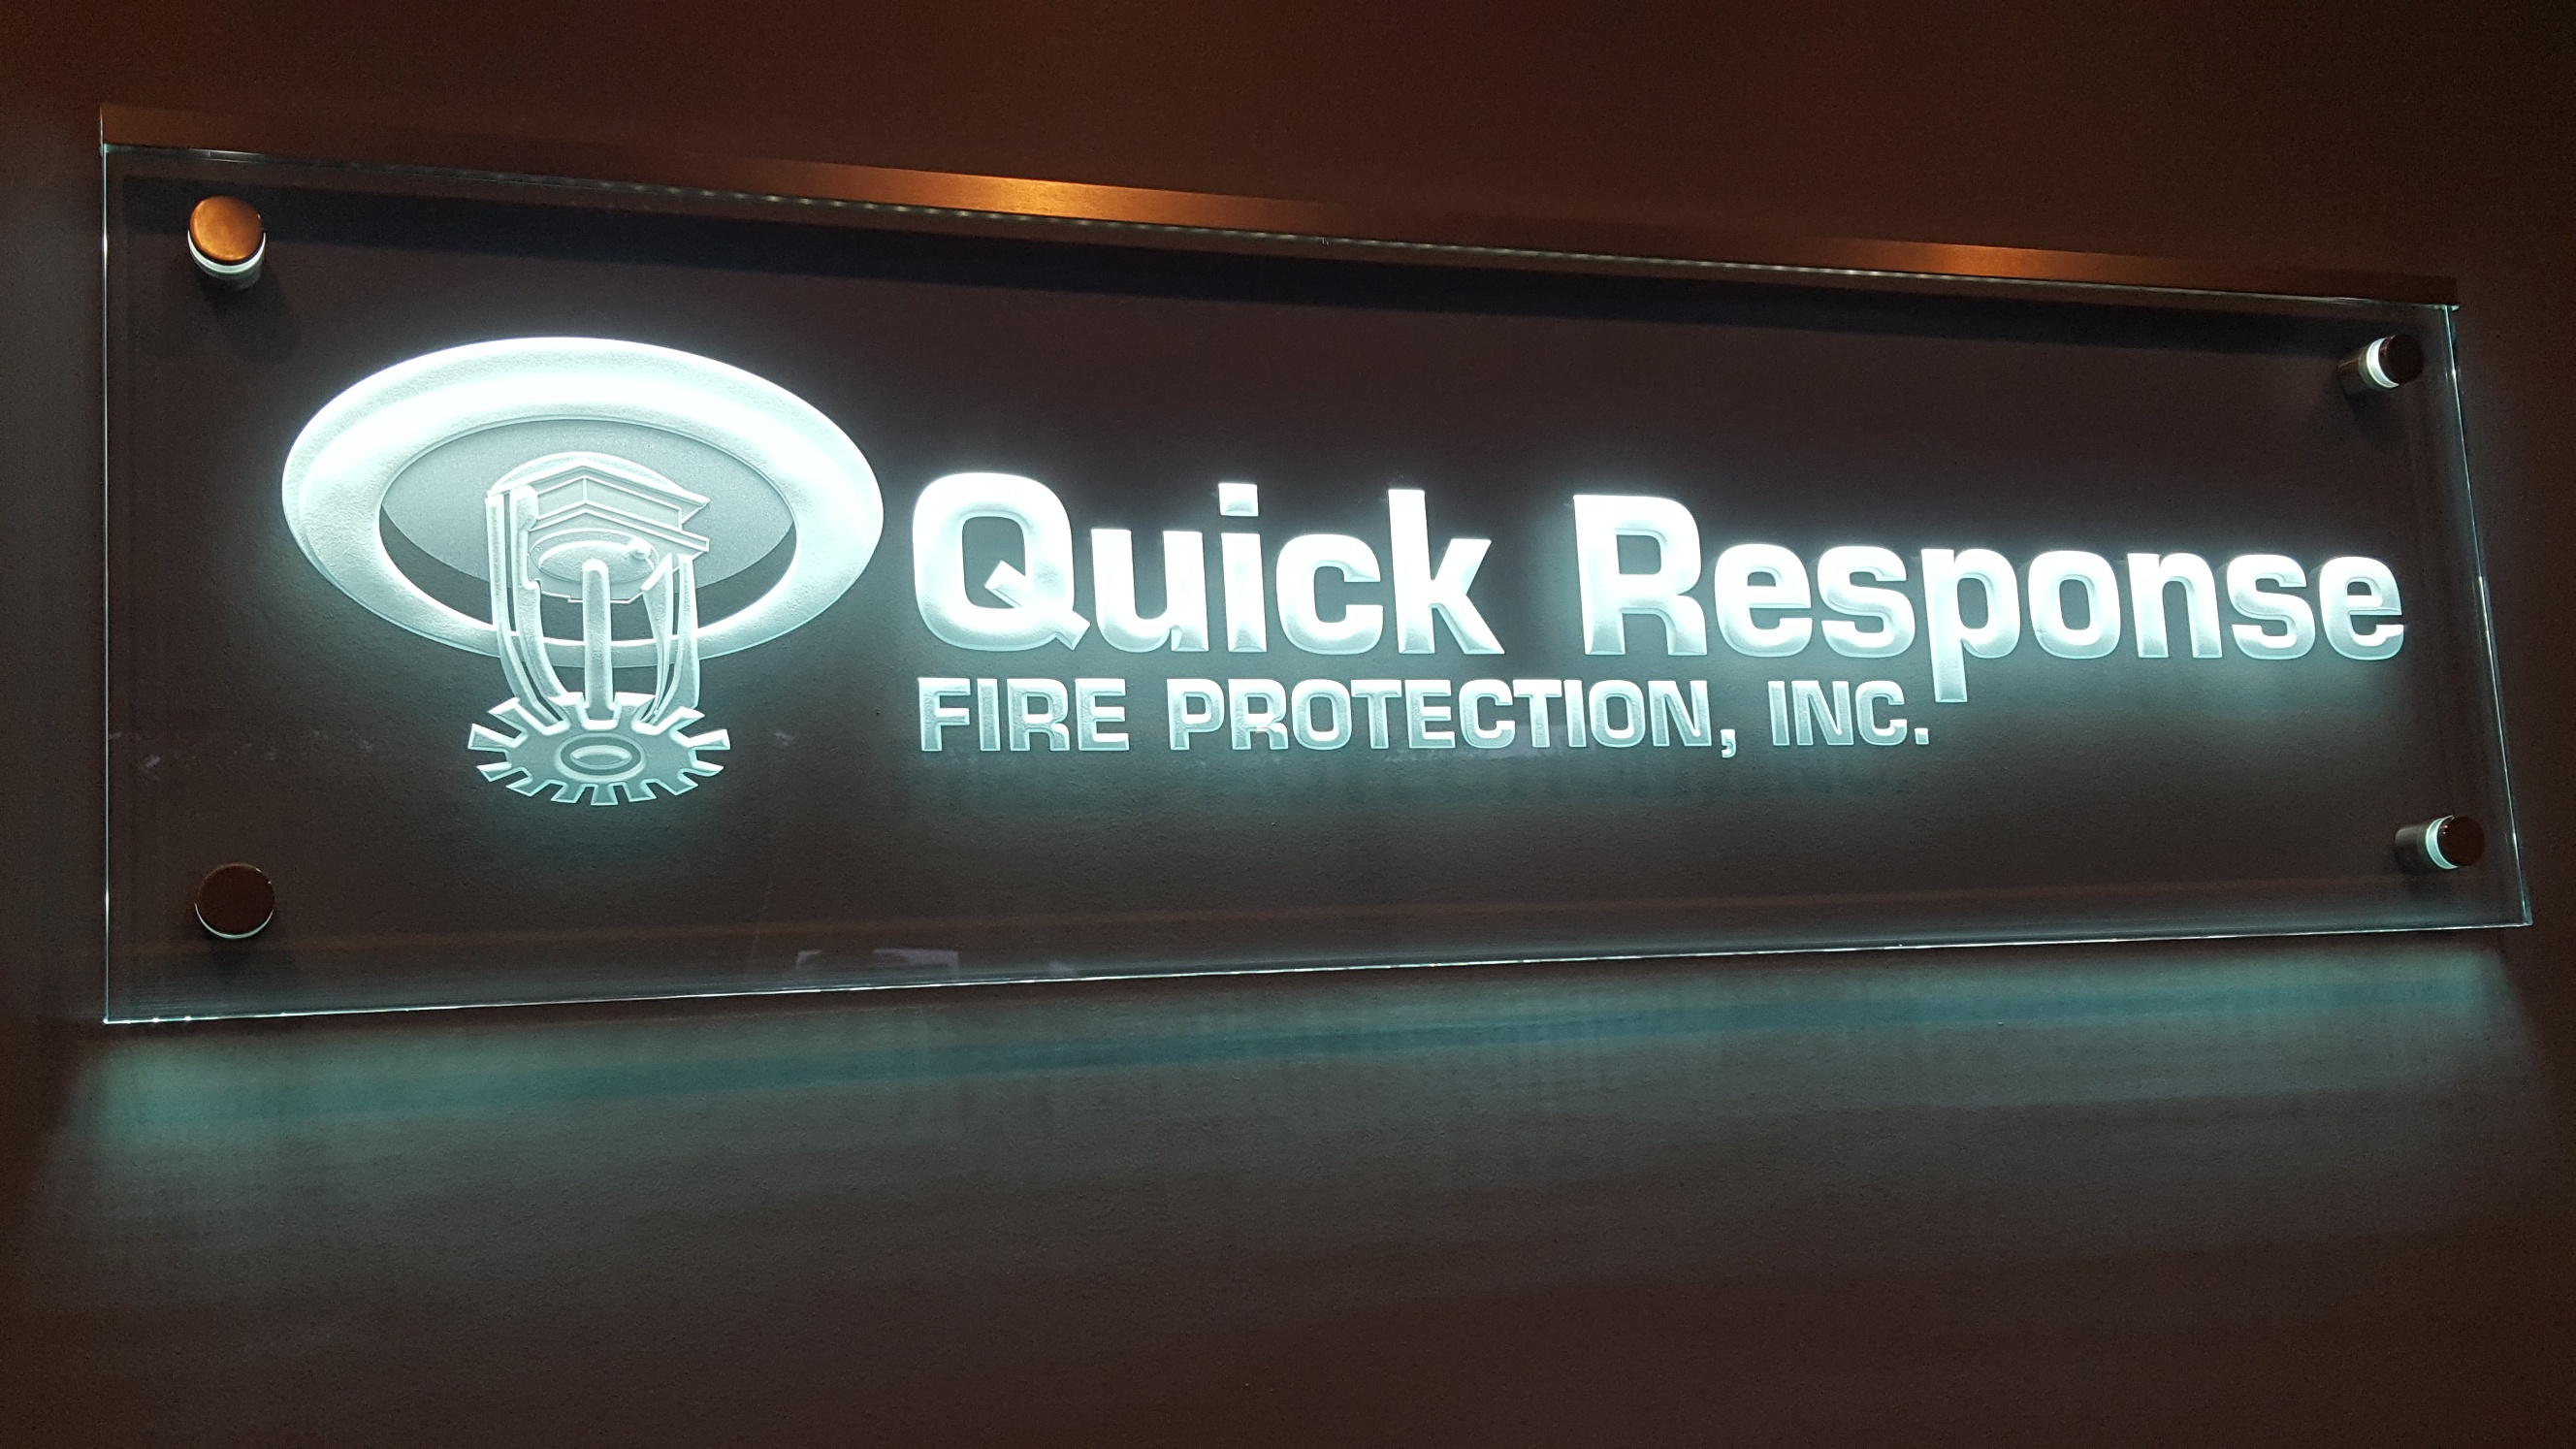 Quick Response Fire Protection, Inc